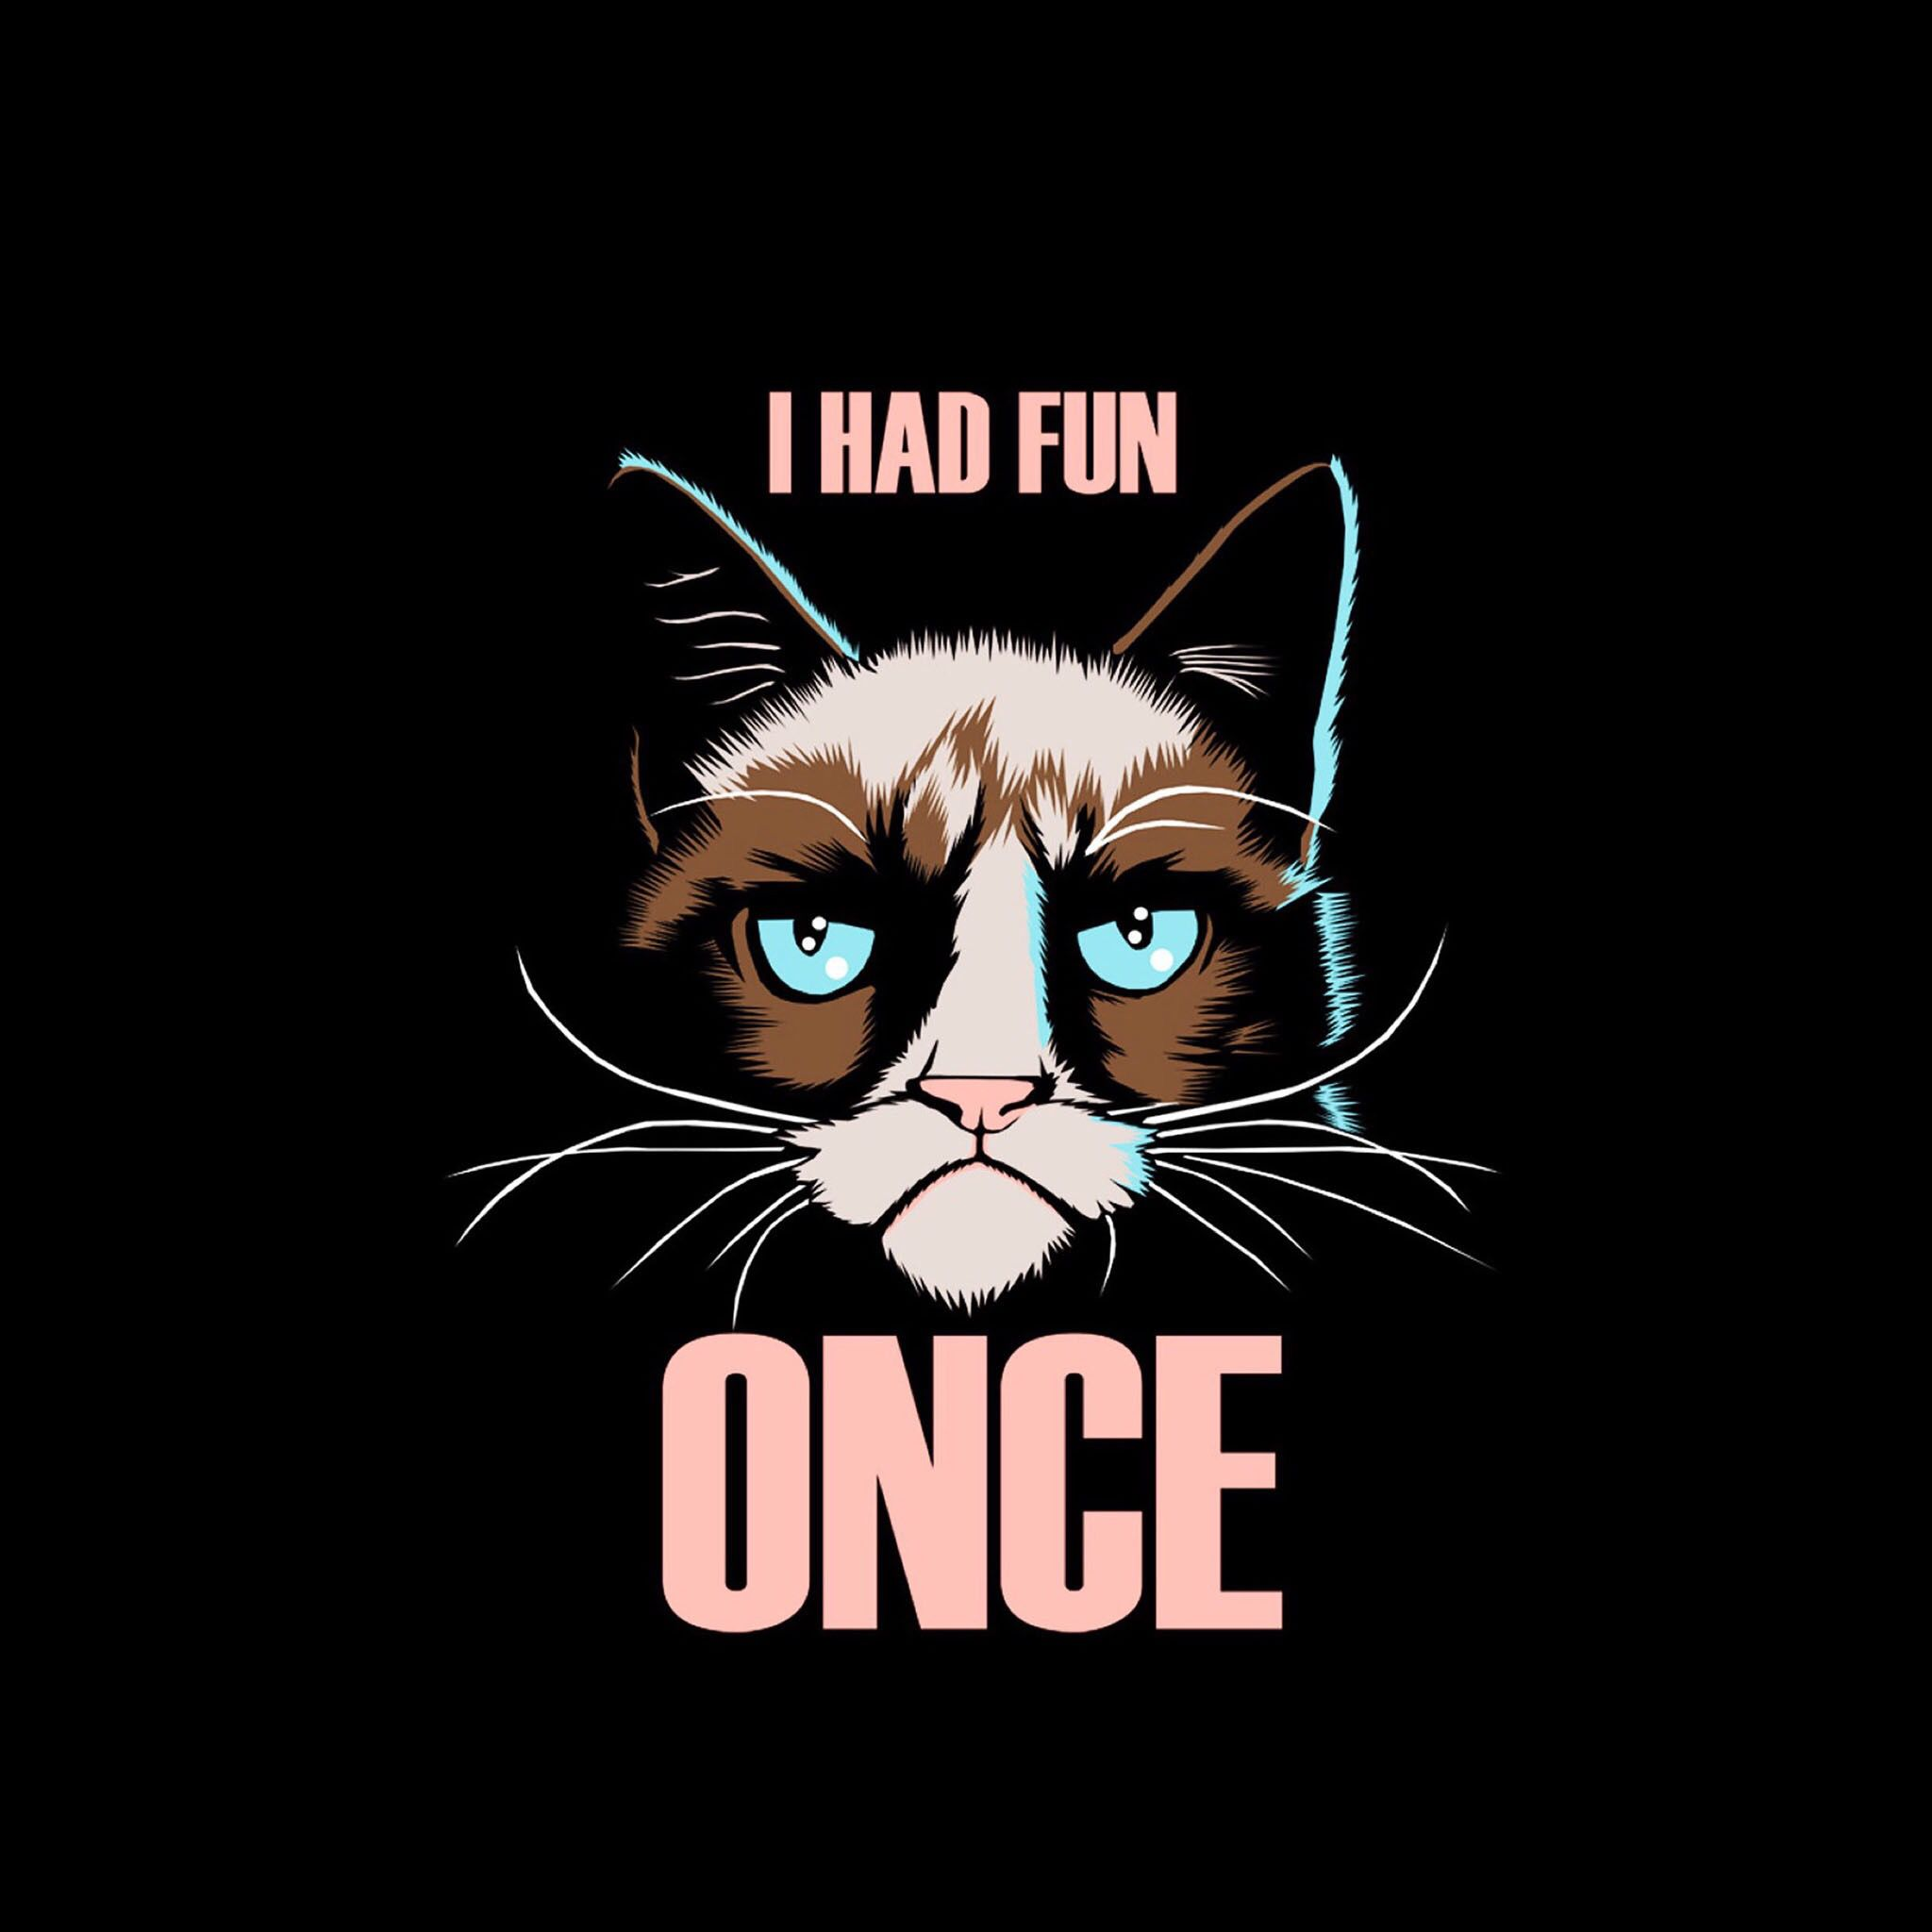 Pin By Jerry On Grumpy Cat Funny Iphone Wallpaper Iphone Wallpaper Grumpy Cat